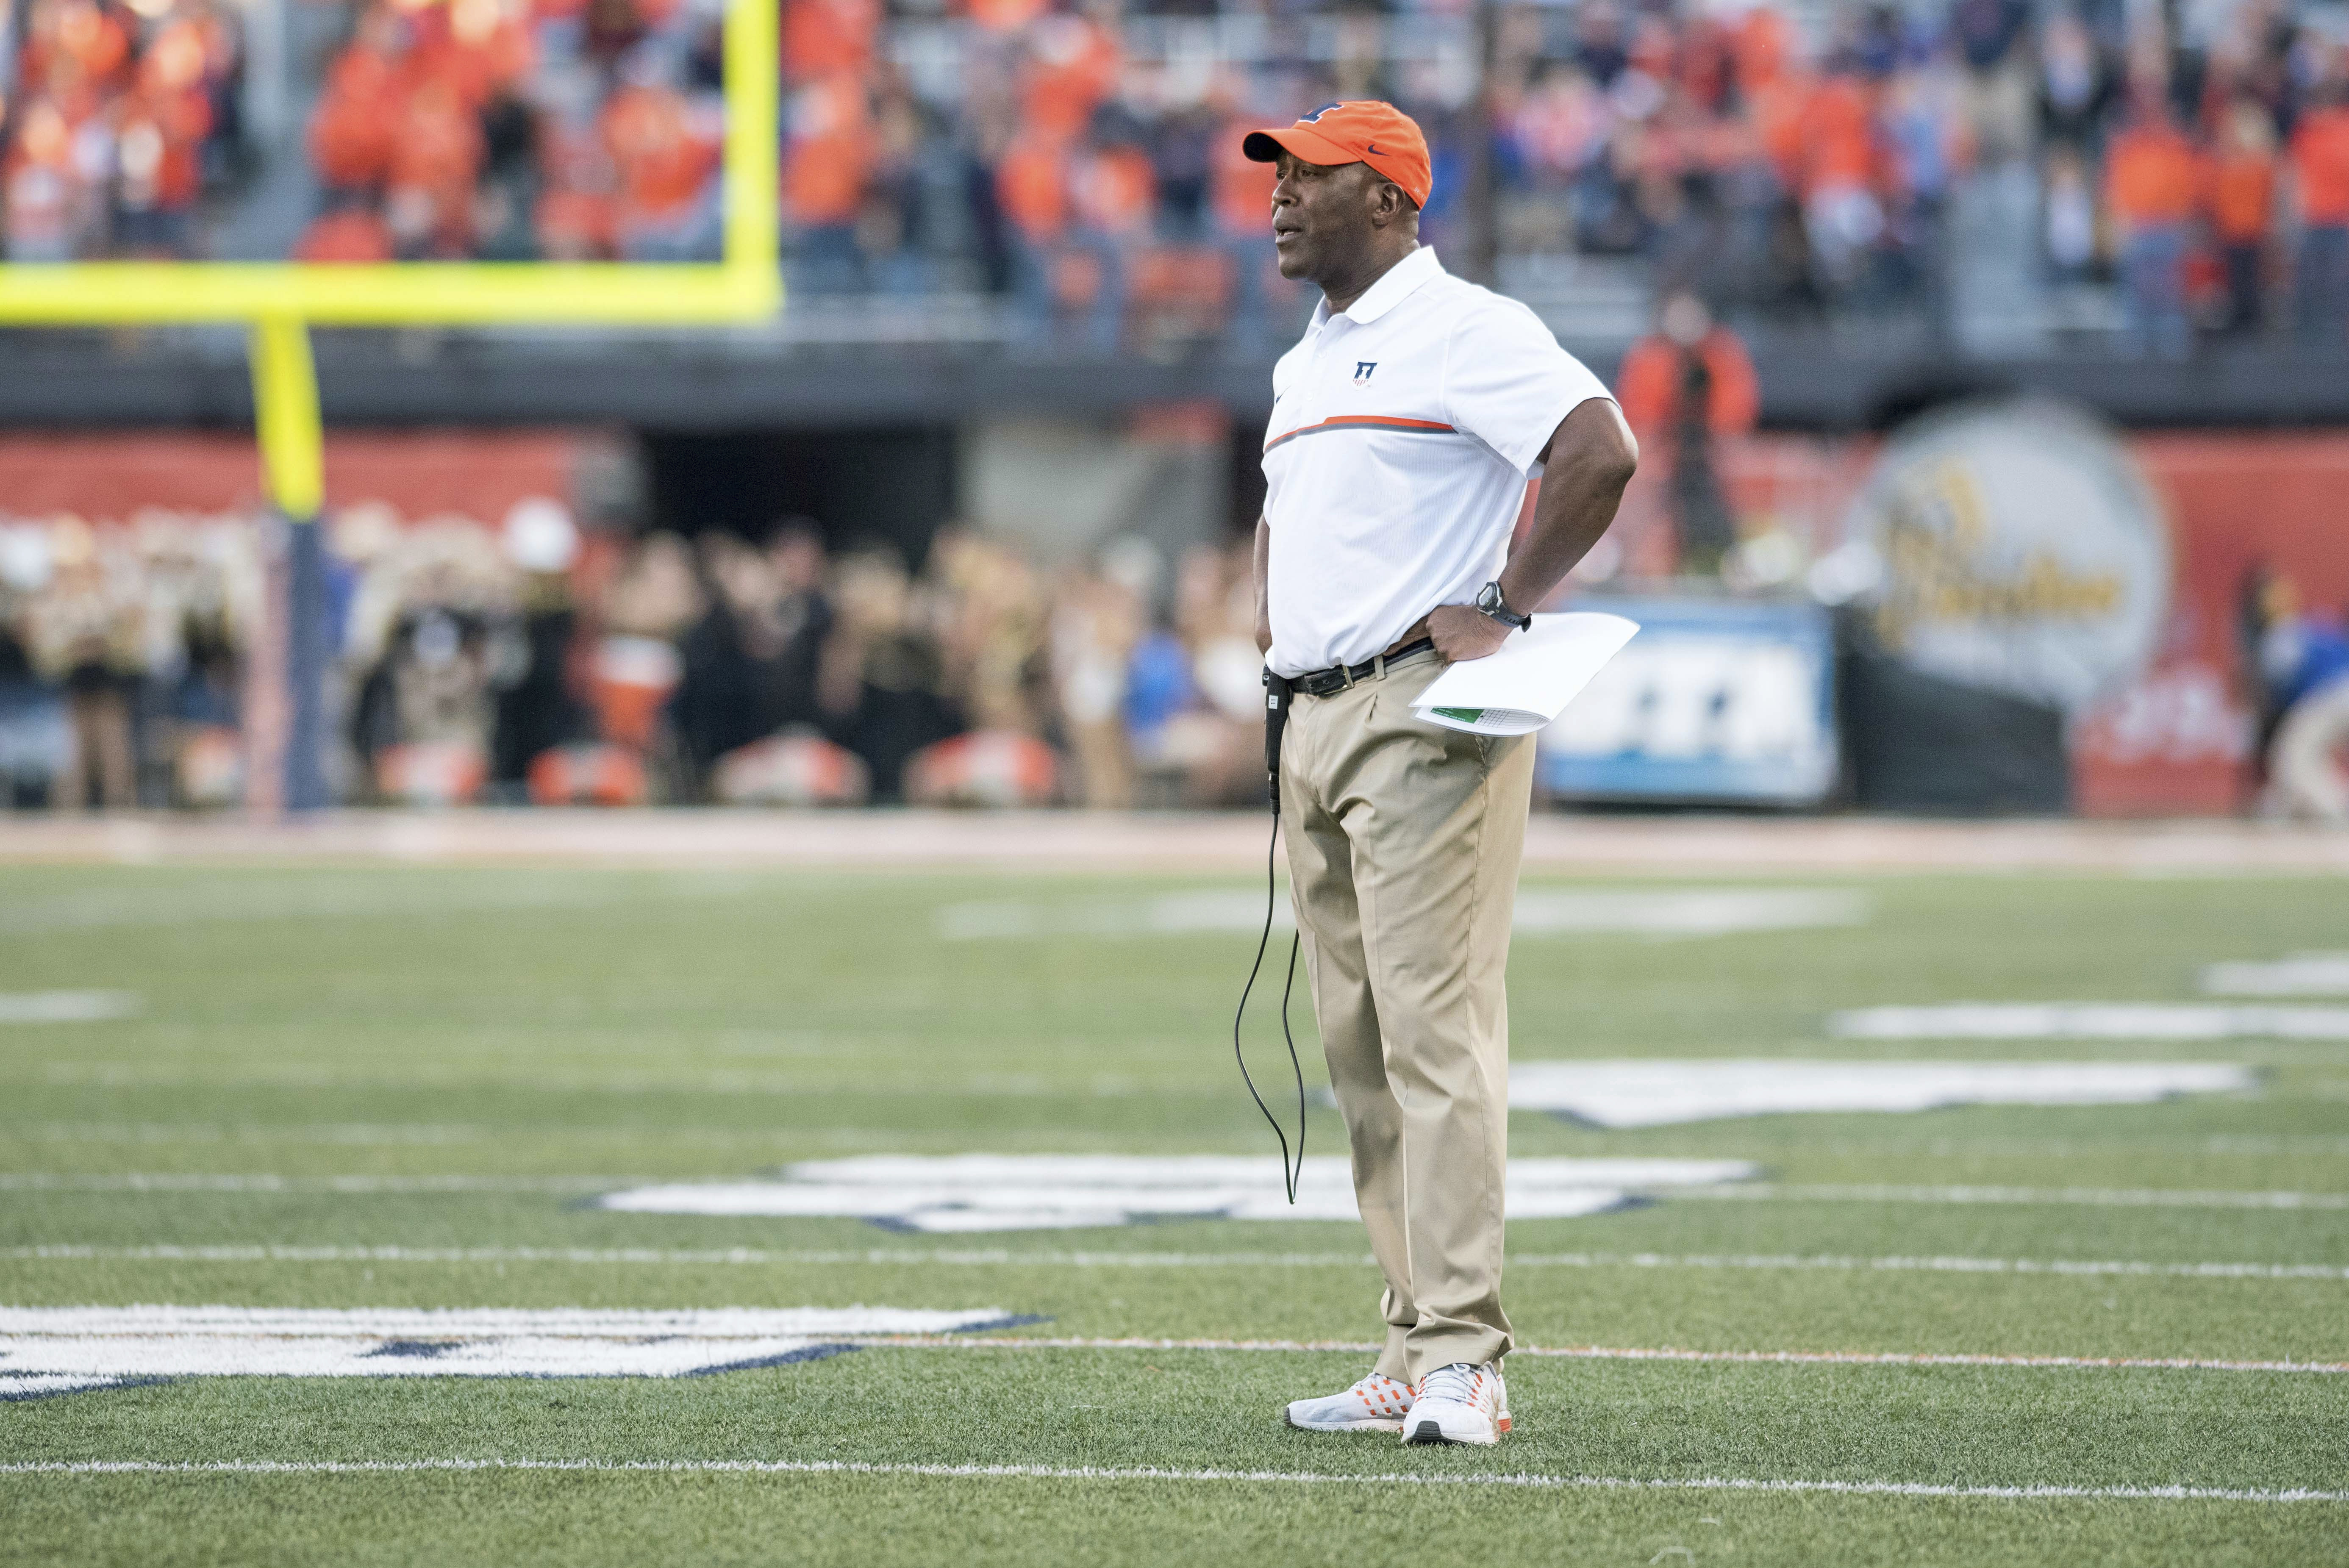 Illinois head coach Lovie Smith stands on the field during a timeout during the second half of an NCAA college football game against Purdue Saturday, Oct. 8, 2016, in Champaign, Ill.  Purdue defeated Illinois 34-31 in overtime.  (AP Photo/Bradley Leeb)